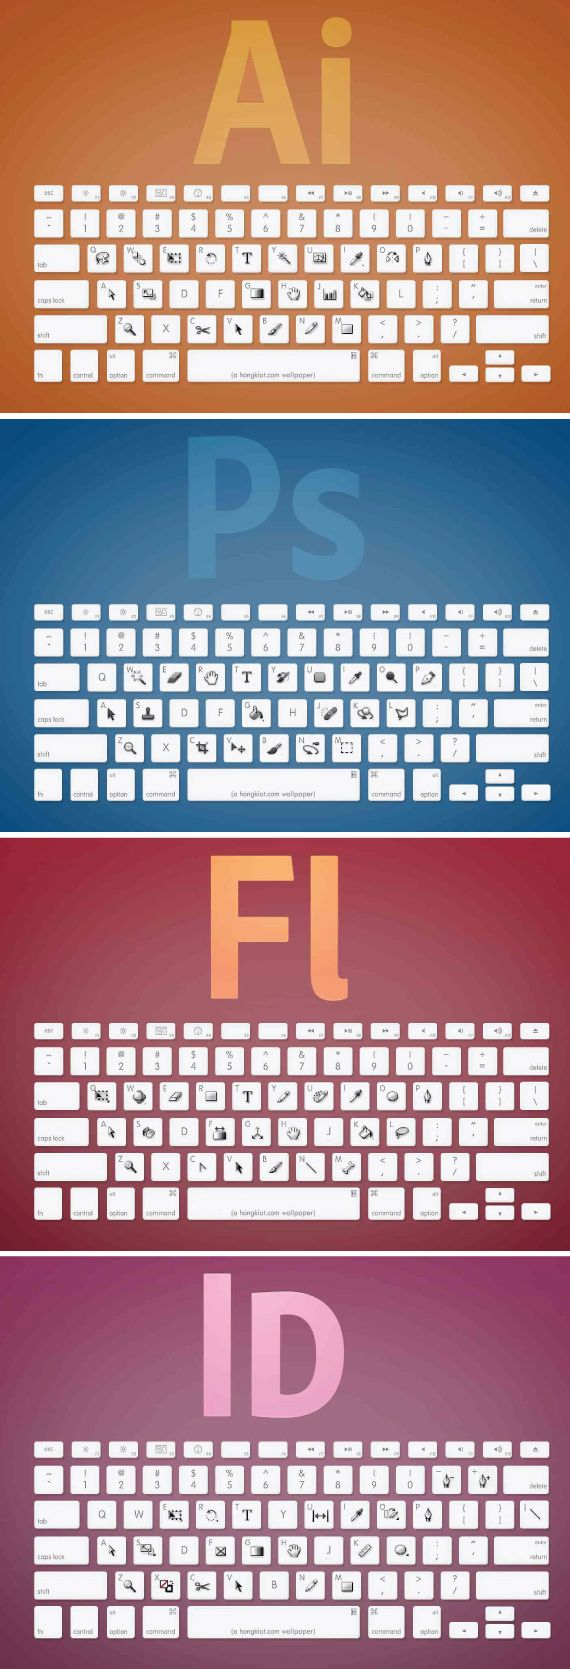 adobe keyboard shortcuts guide | going home to roost